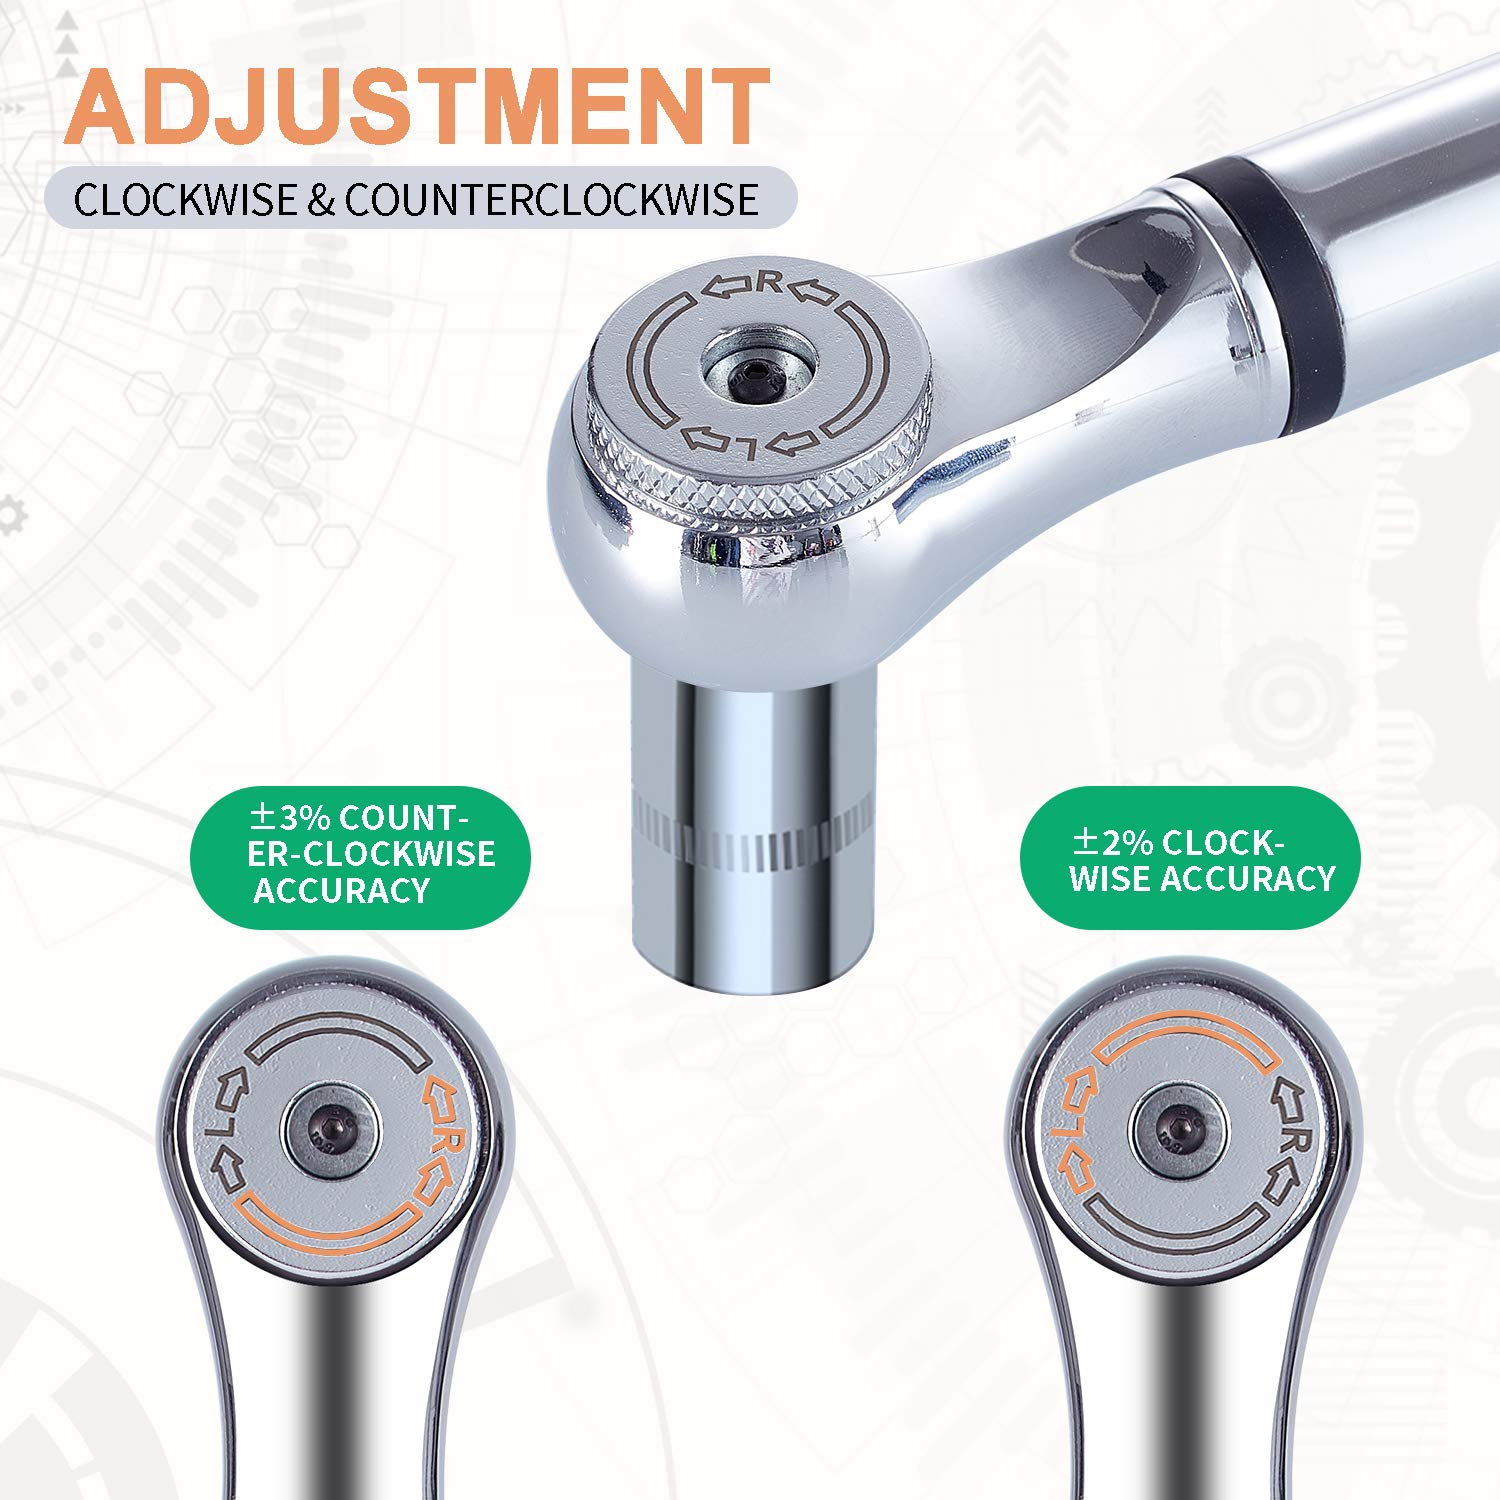 SOLUDE 1//4 Micro Digital Adjustable Torque Wrench,1~20 Nm,8.84~176.88 in.-lb Torque Range Portable Precision Measuring Tools with Buzzer and LED Notification